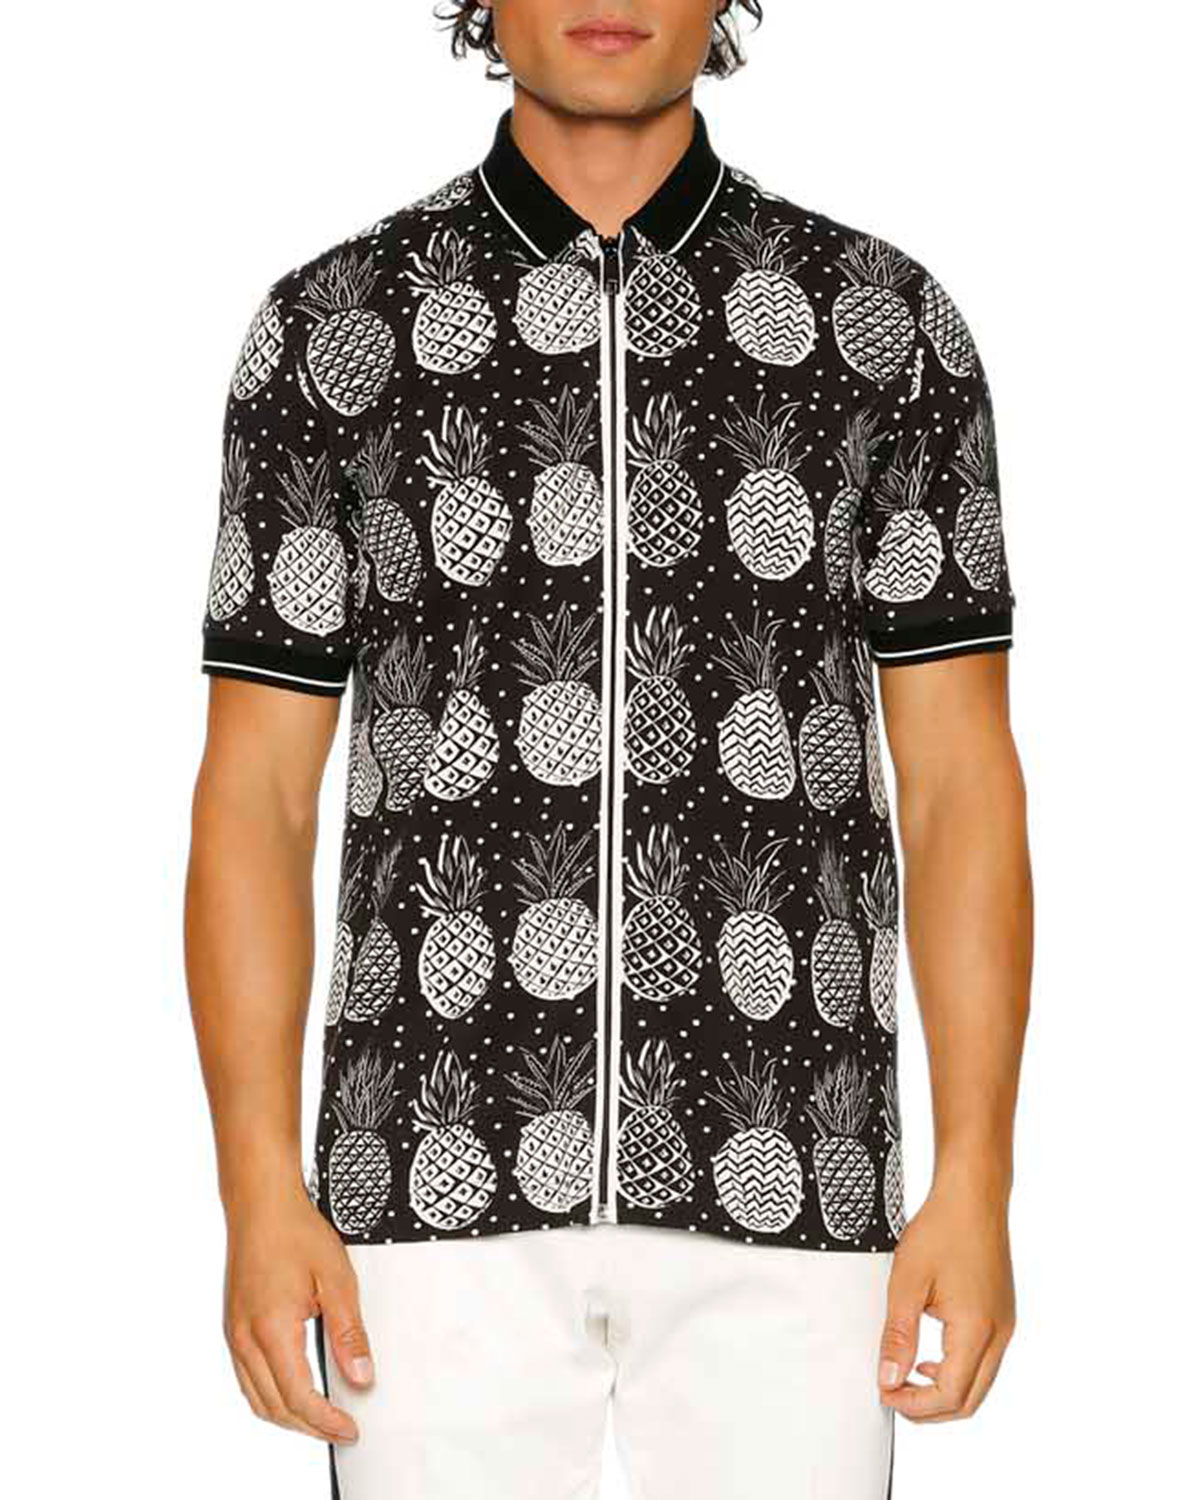 Dolce Gabbana Pineapple Full Zip Polo Shirt Black White Neiman